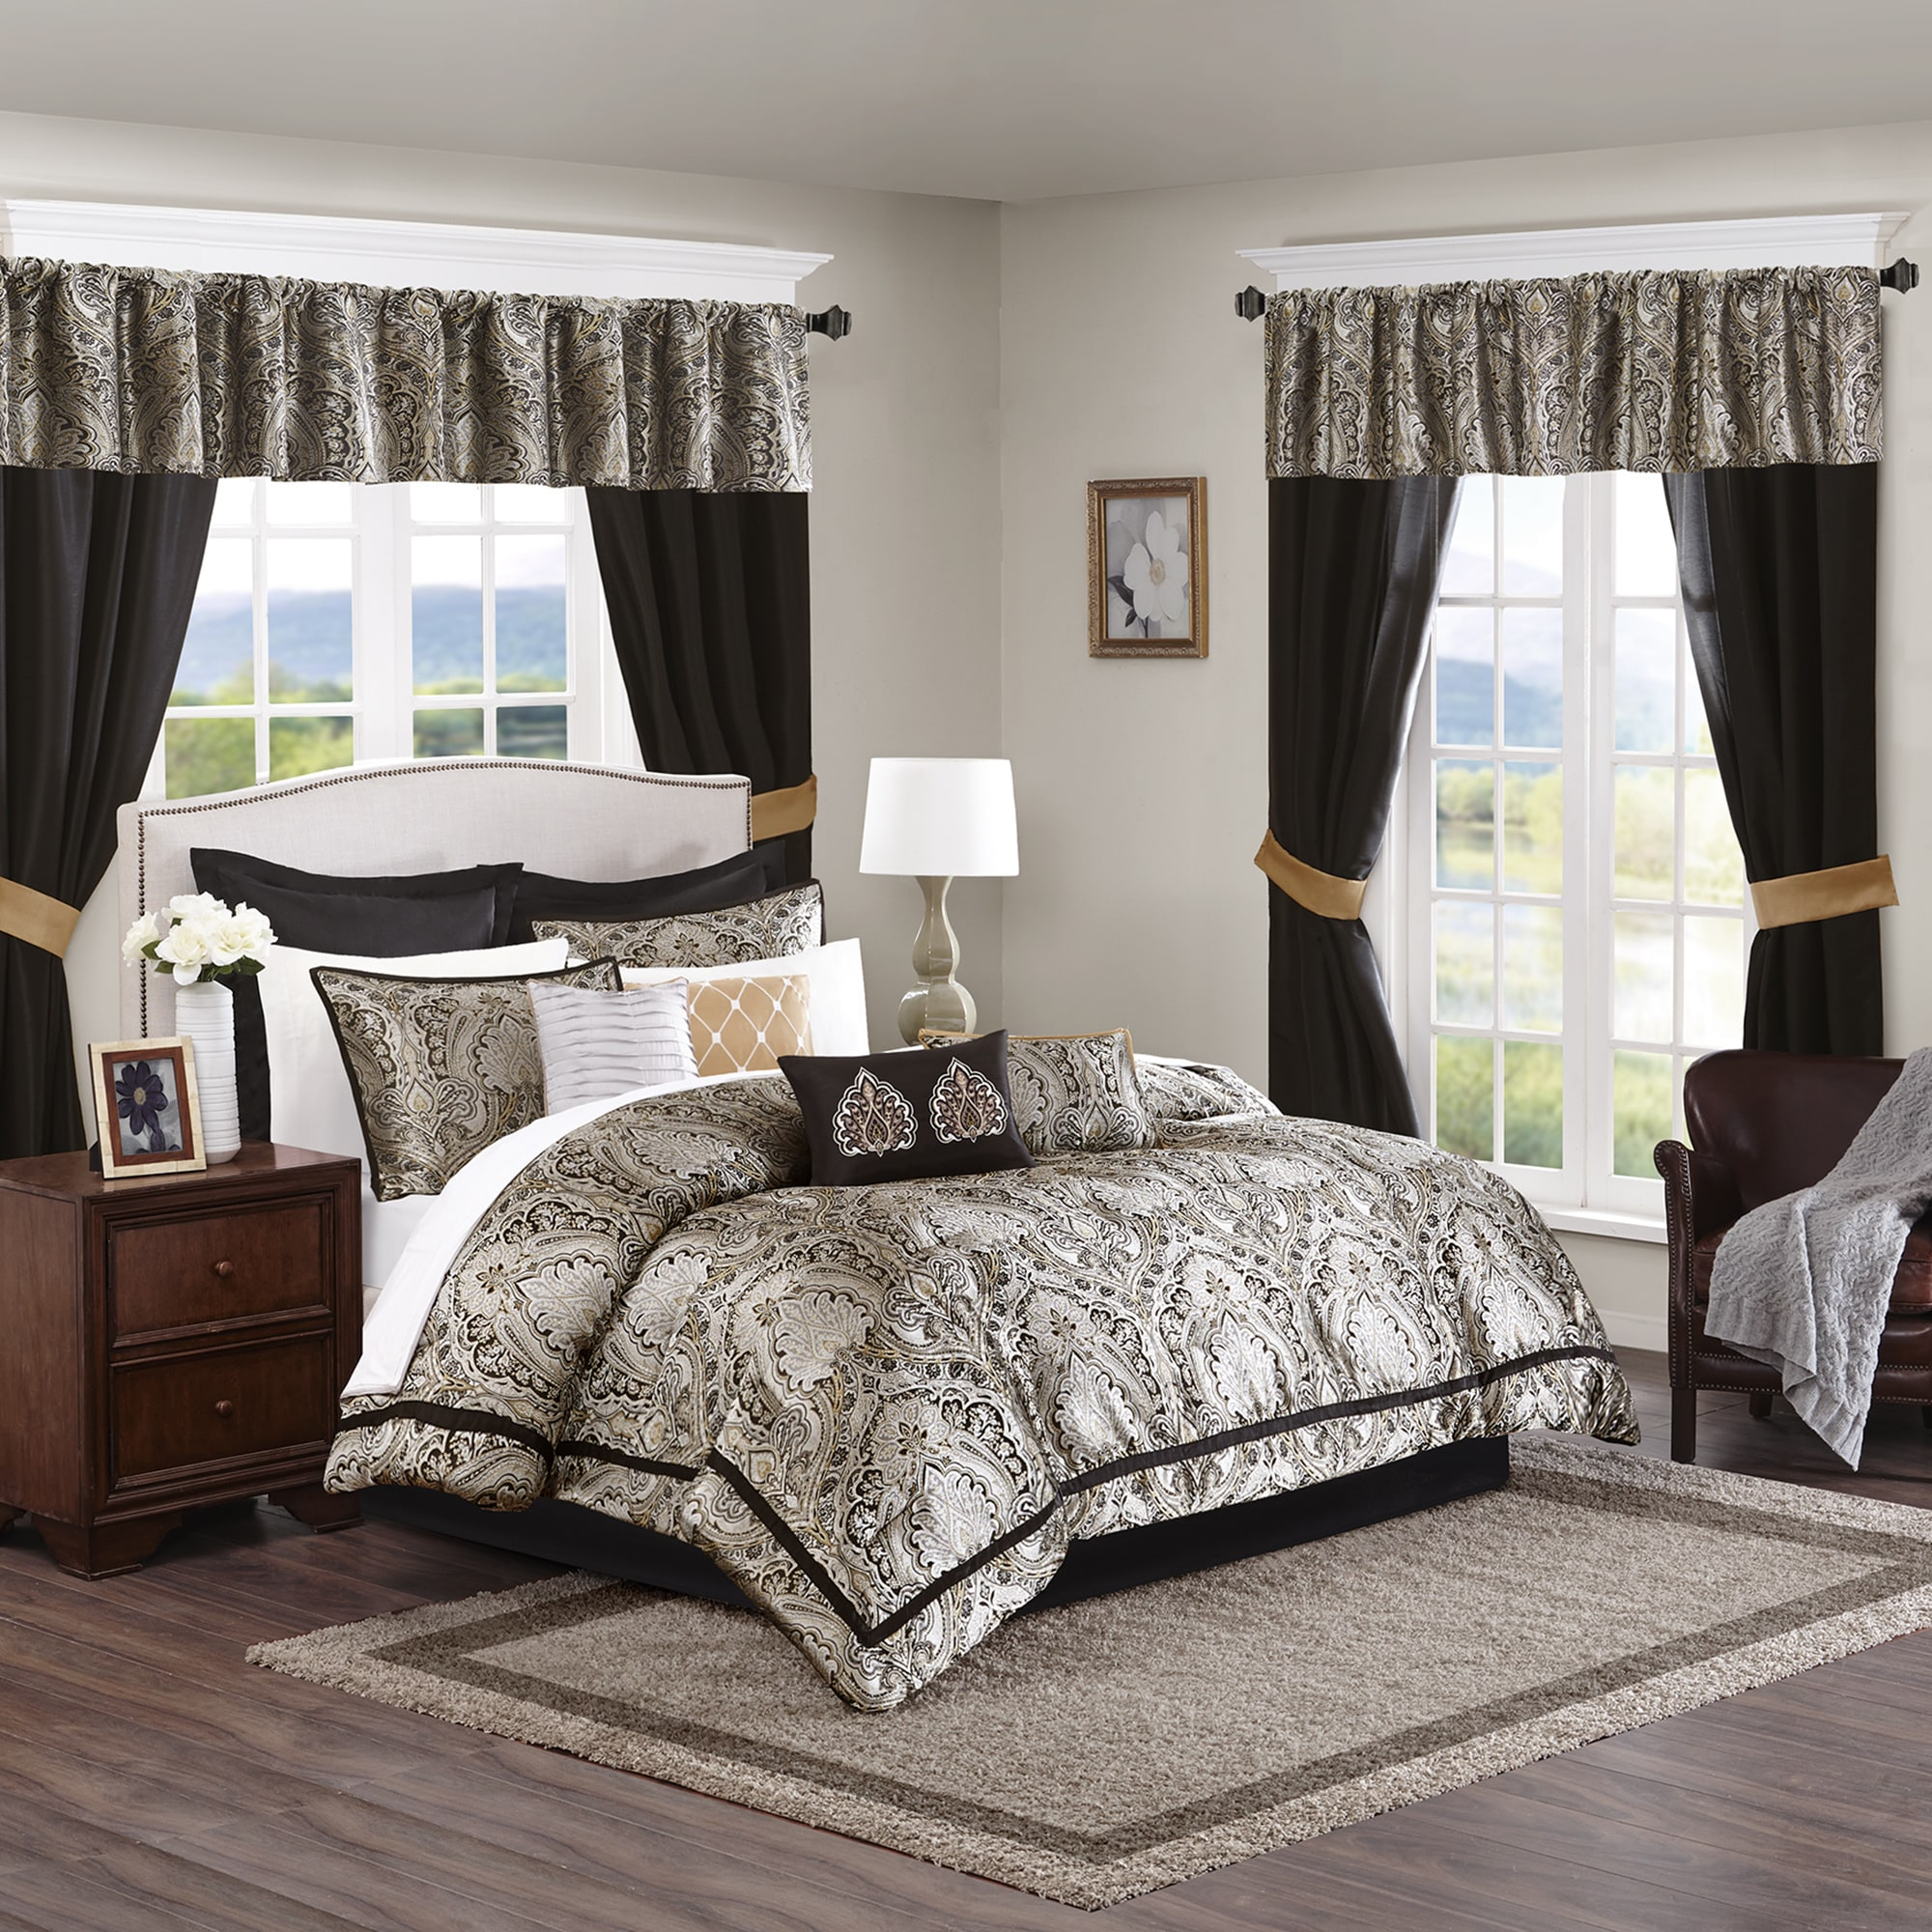 a41a2ded792 Shop Madison Park Essentials Christine Black 24-Piece Room in a Bag-Window  Panels   Sheet Set Included - On Sale - Ships To Canada - Overstock.ca -  11589212